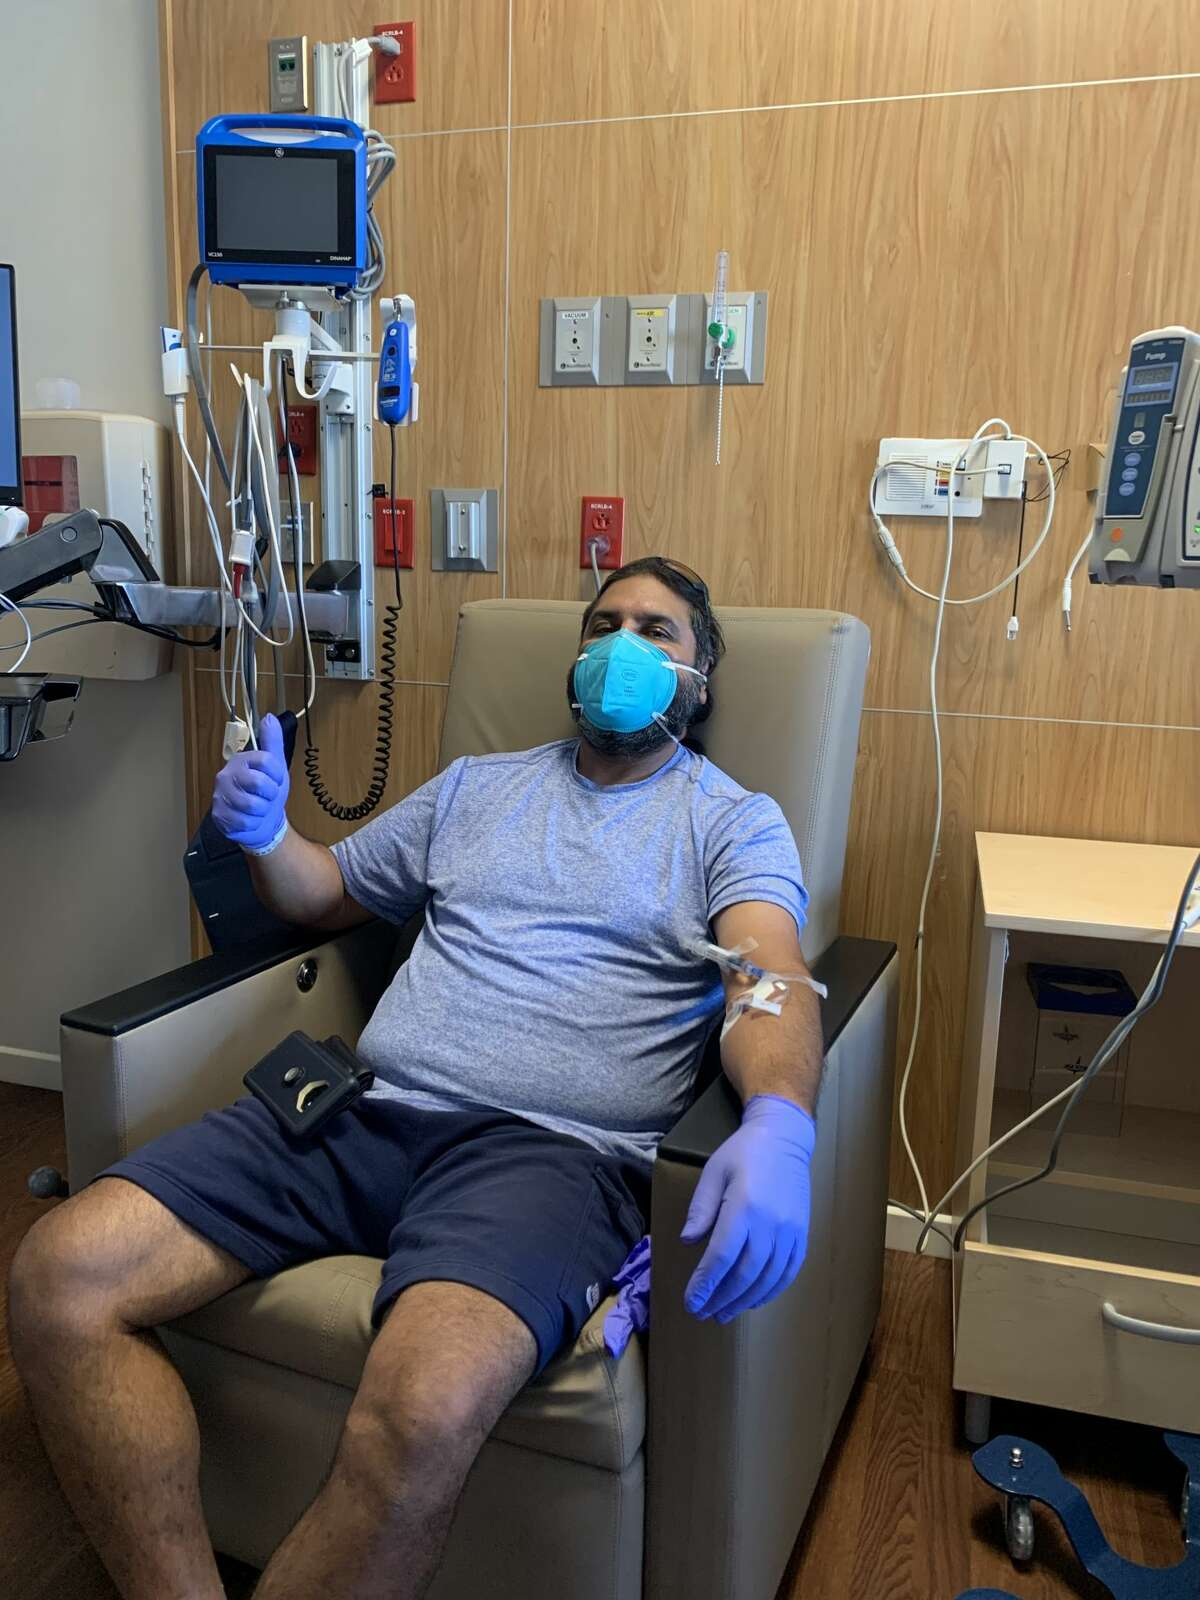 A monoclonal antibody therapy session taking place recently. Midland Health's Dr. Larry Wilson said a relative relatively small number of people have ended up hospitalized after going through that therapy compared to people that don't experience it.